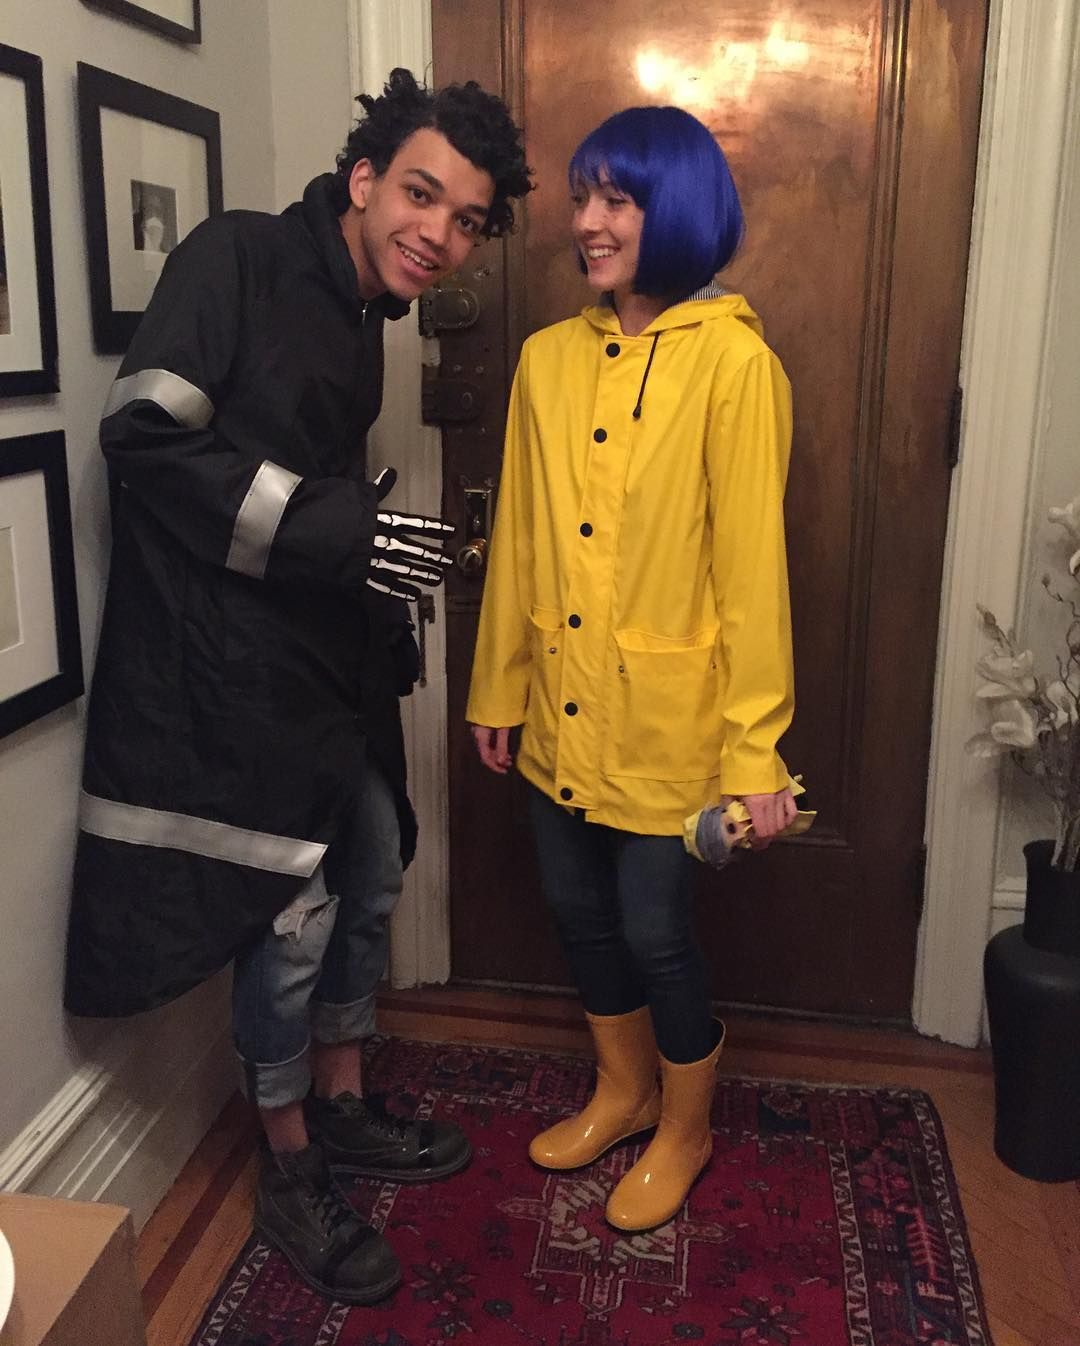 Coraline Jones And Wybie Lovat I Got Really Excited For A Second Because I Thought W Cute Couple Halloween Costumes Halloween Outfits Cute Halloween Costumes